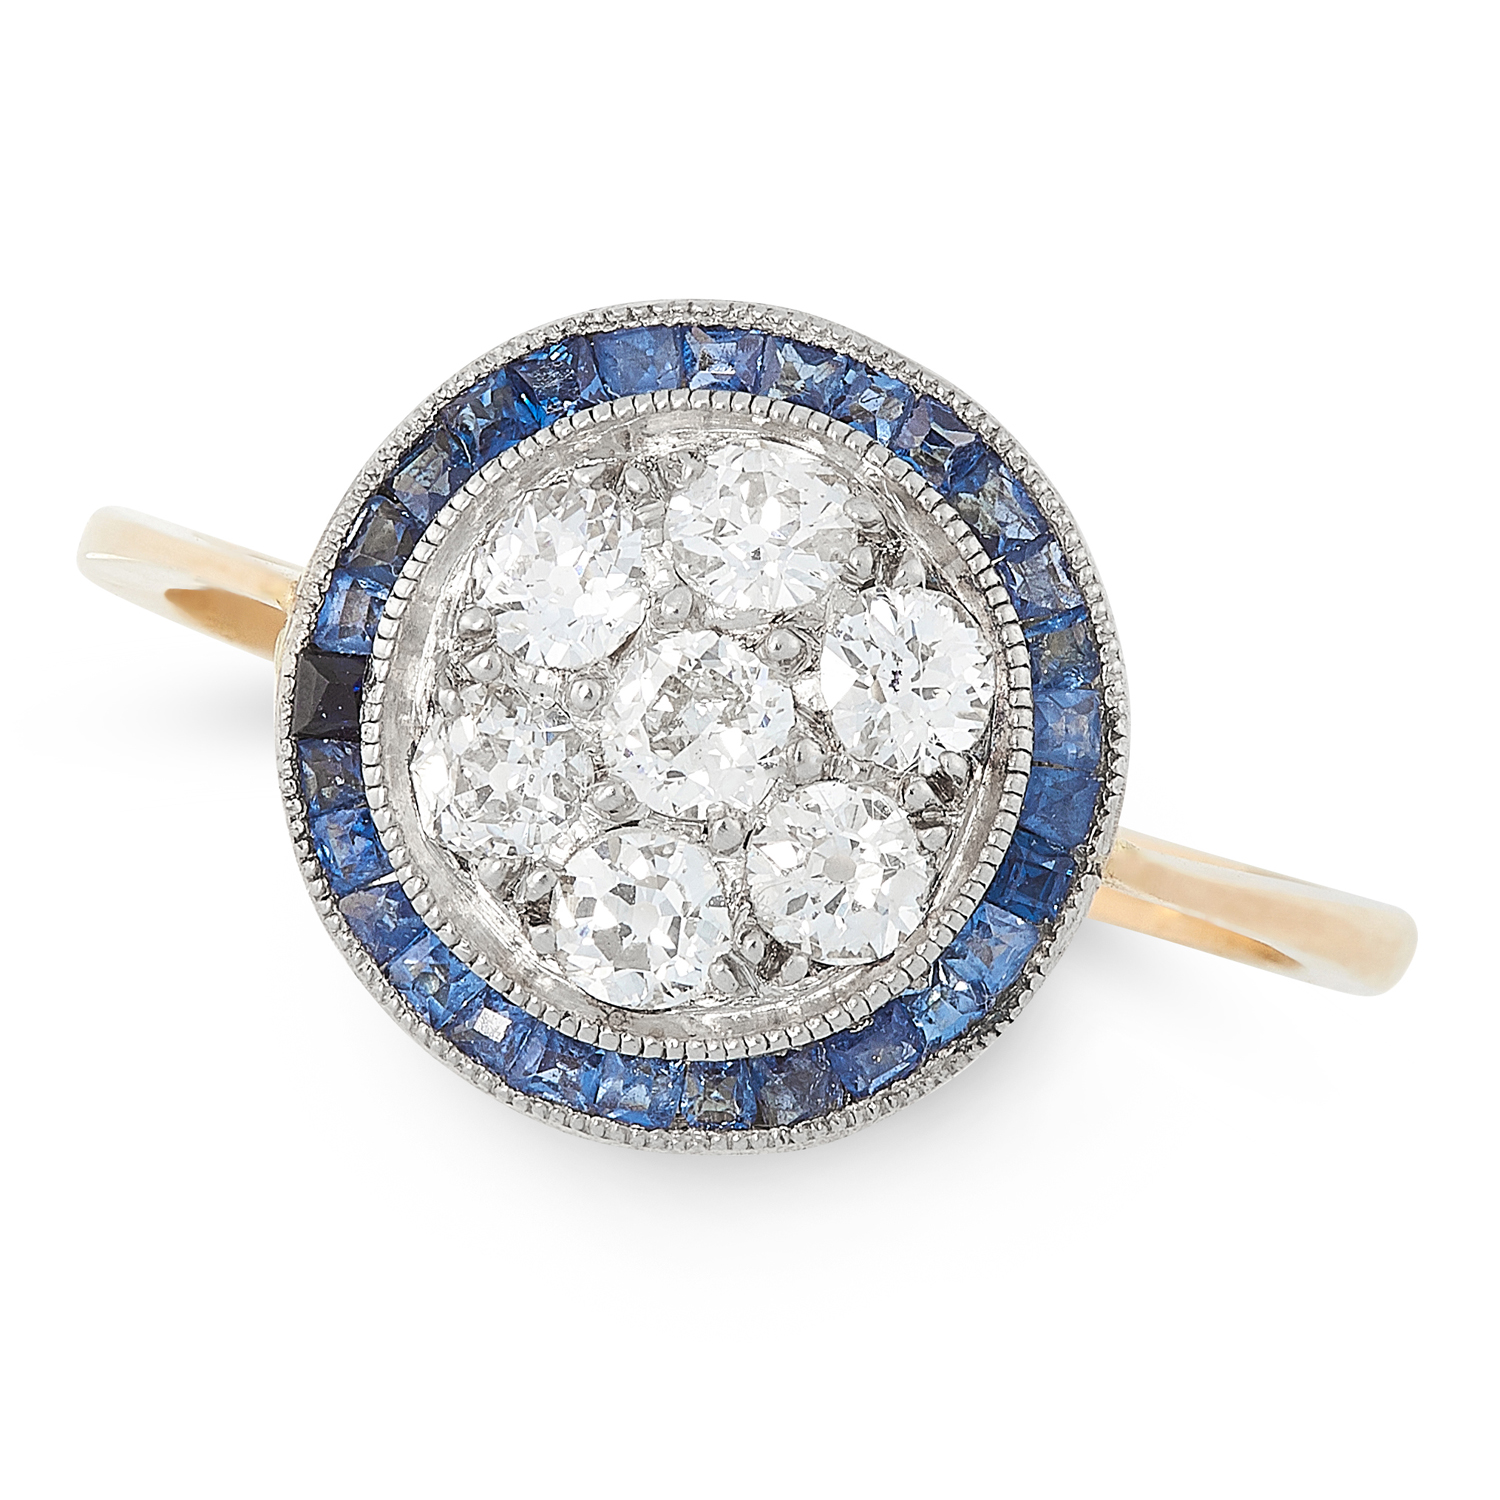 AN ART DECO DIAMOND AND SAPPHIRE RING, EARLY 20TH CENTURY in high carat yellow and white gold, set